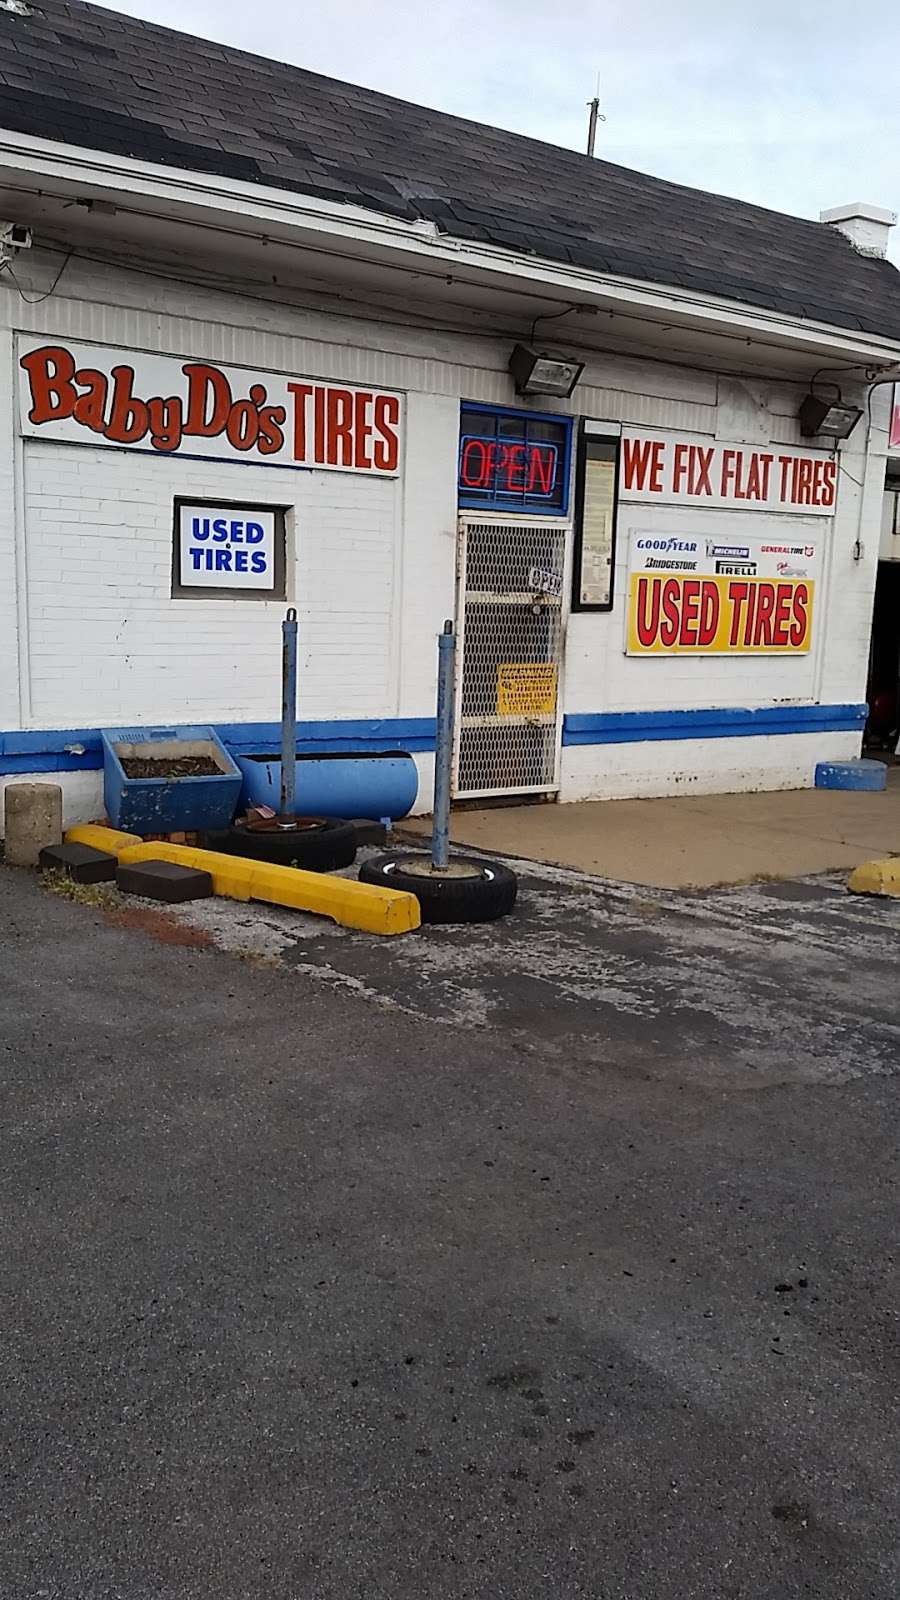 Babys DO Tire Shop - car repair  | Photo 6 of 6 | Address: 336 W 119th St, Chicago, IL 60628, USA | Phone: (773) 660-0374